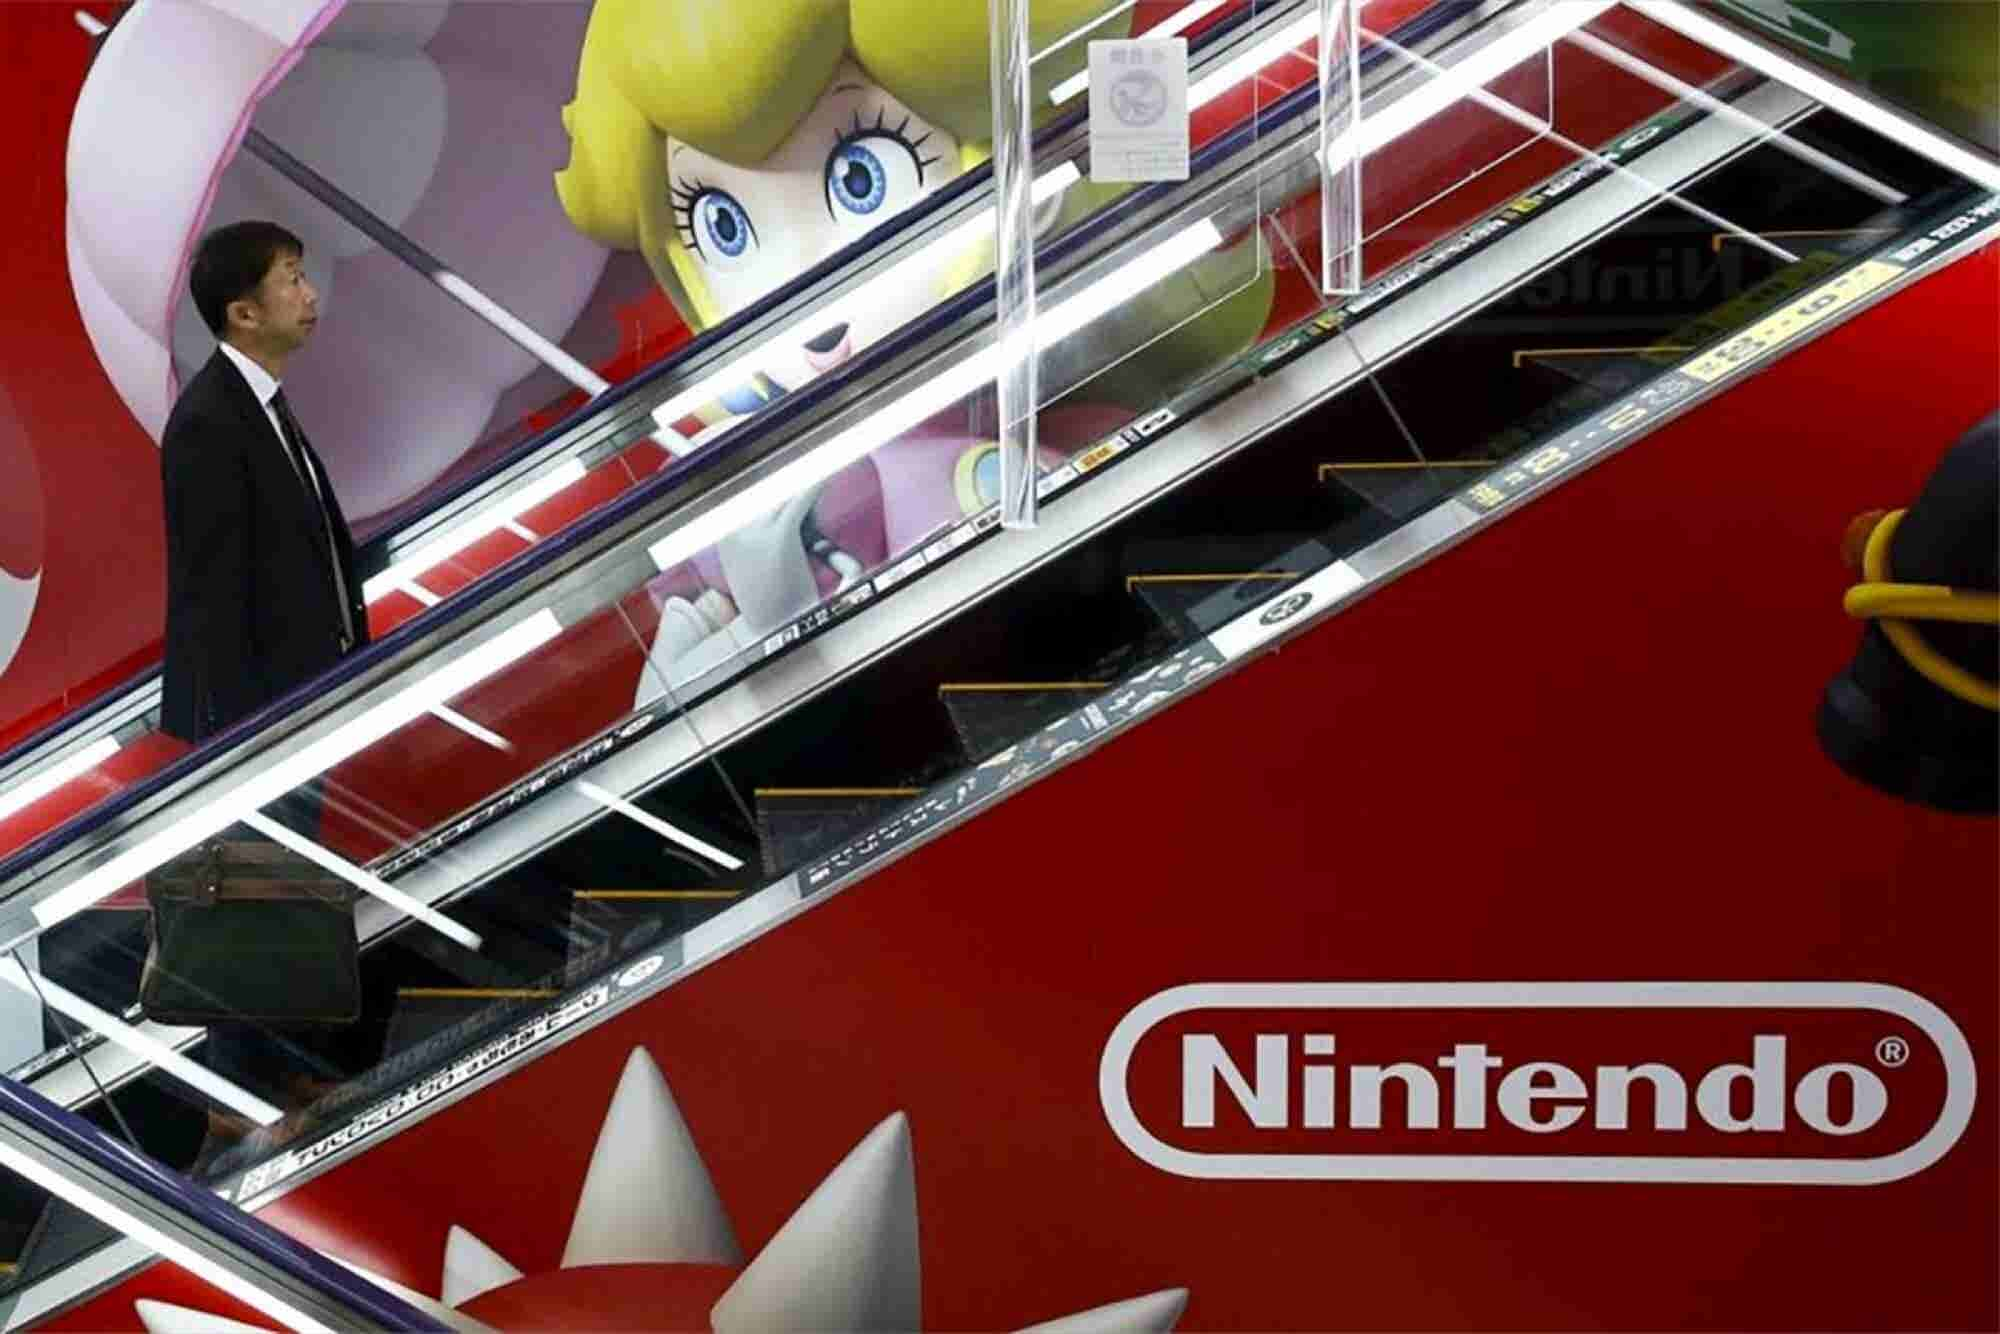 Nintendo Pins Hopes on Smartphone Games and New Console to Boost Profits